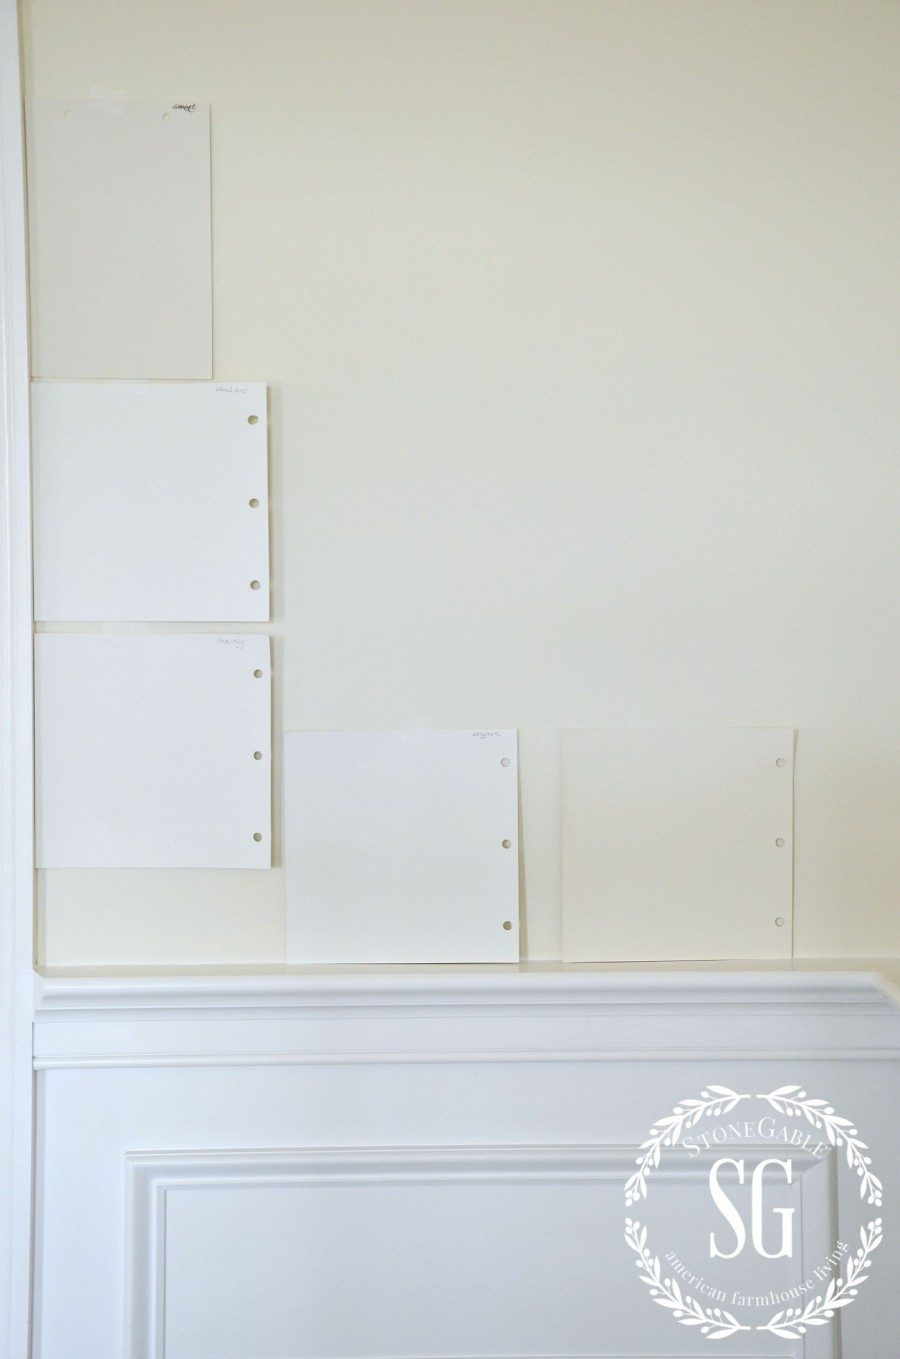 5 TIPS FOR FINDING THE PERFECT PAINT COLOR- try lots of paint color-stonegableblog.com